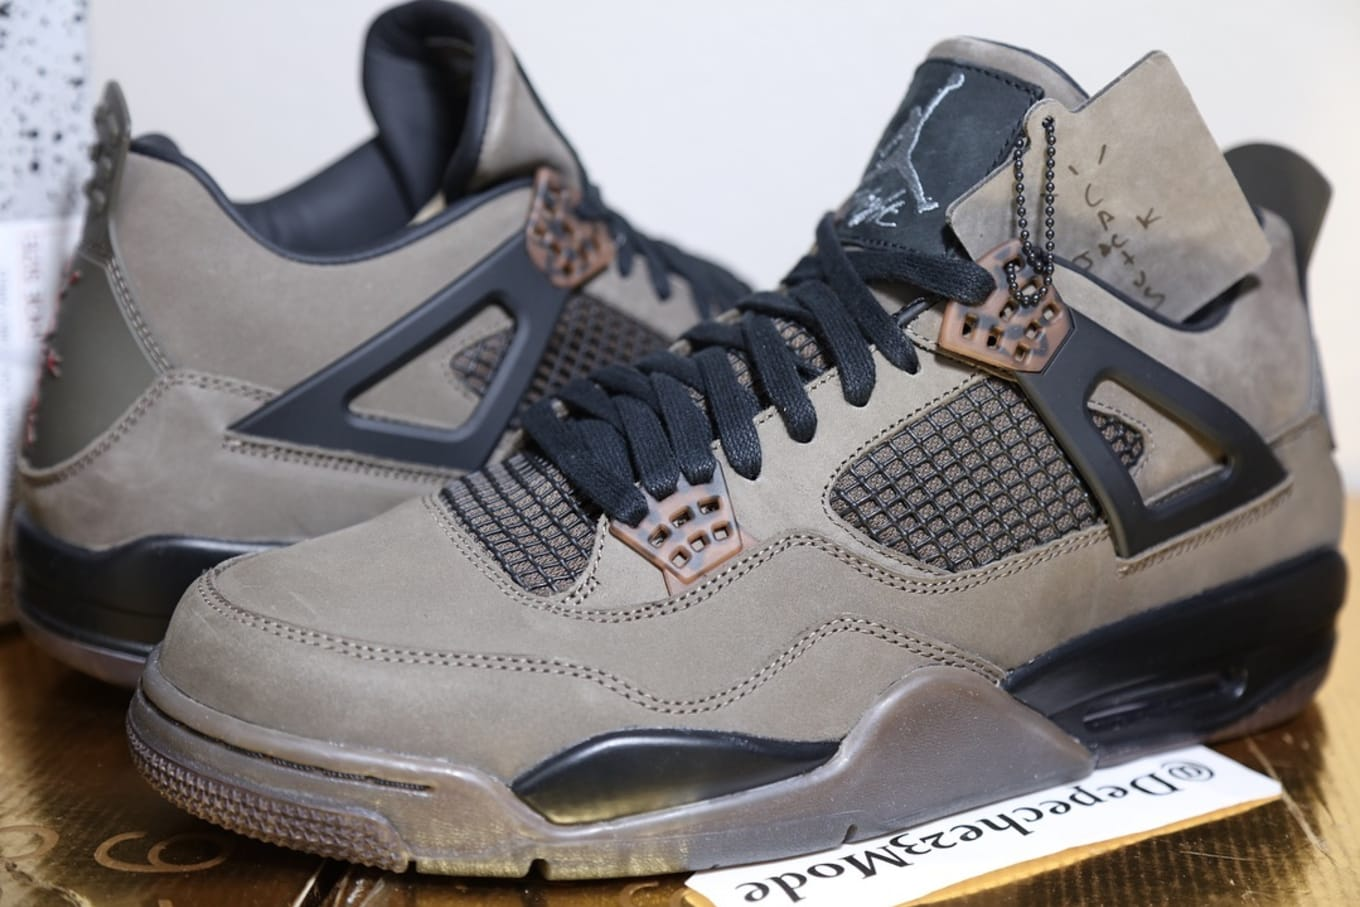 ed67496ddcd2de Up Close Look At Travis Scott s  Olive  Air Jordan 4 Collab